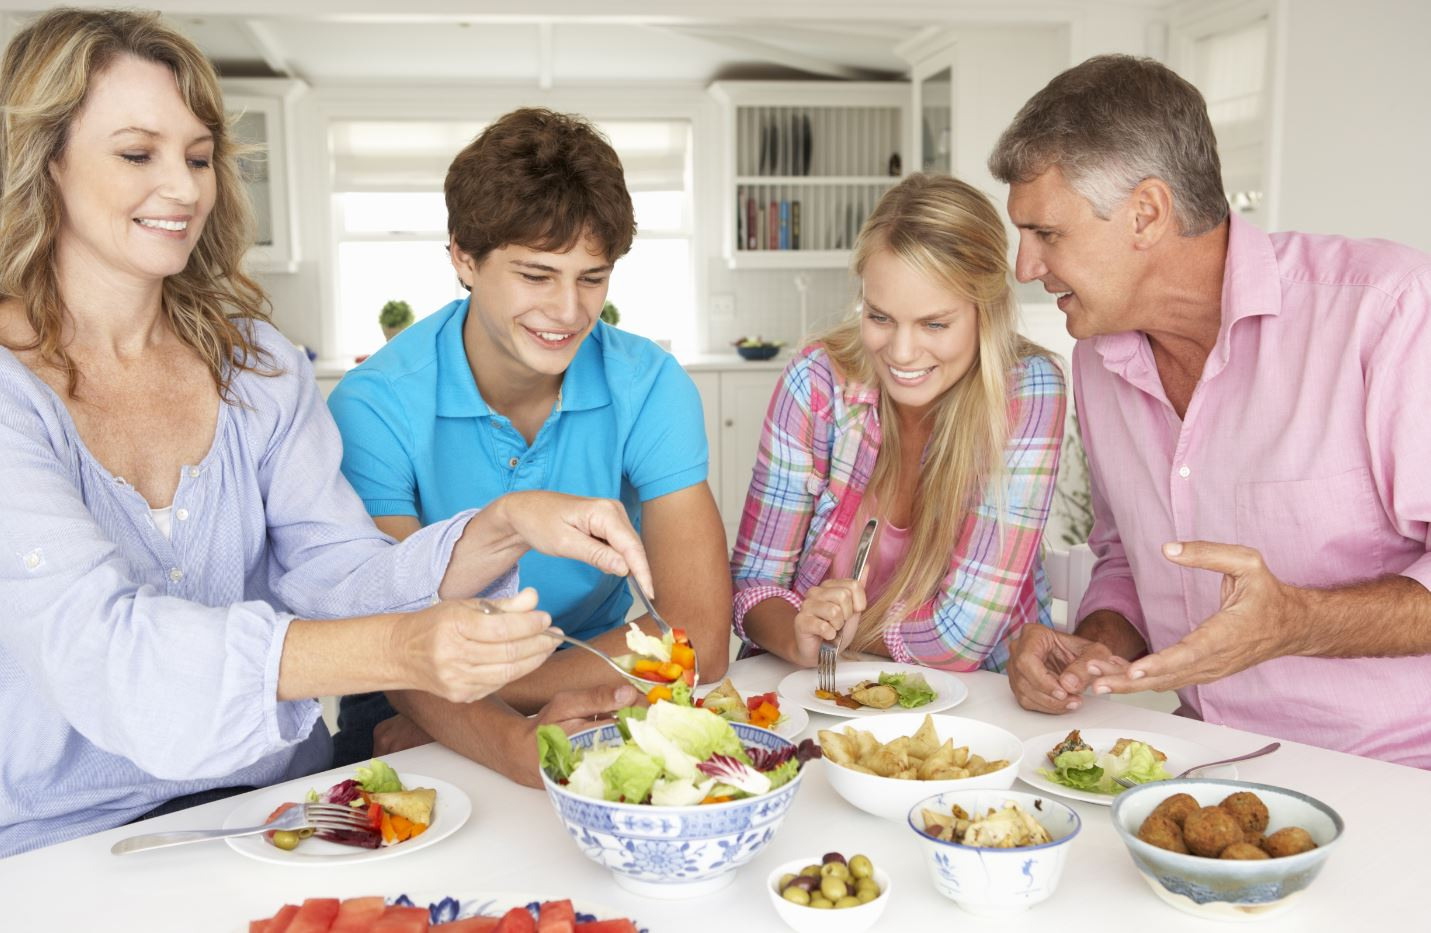 Growing Up Fast: How To Stay Involved In Your Teen's Life